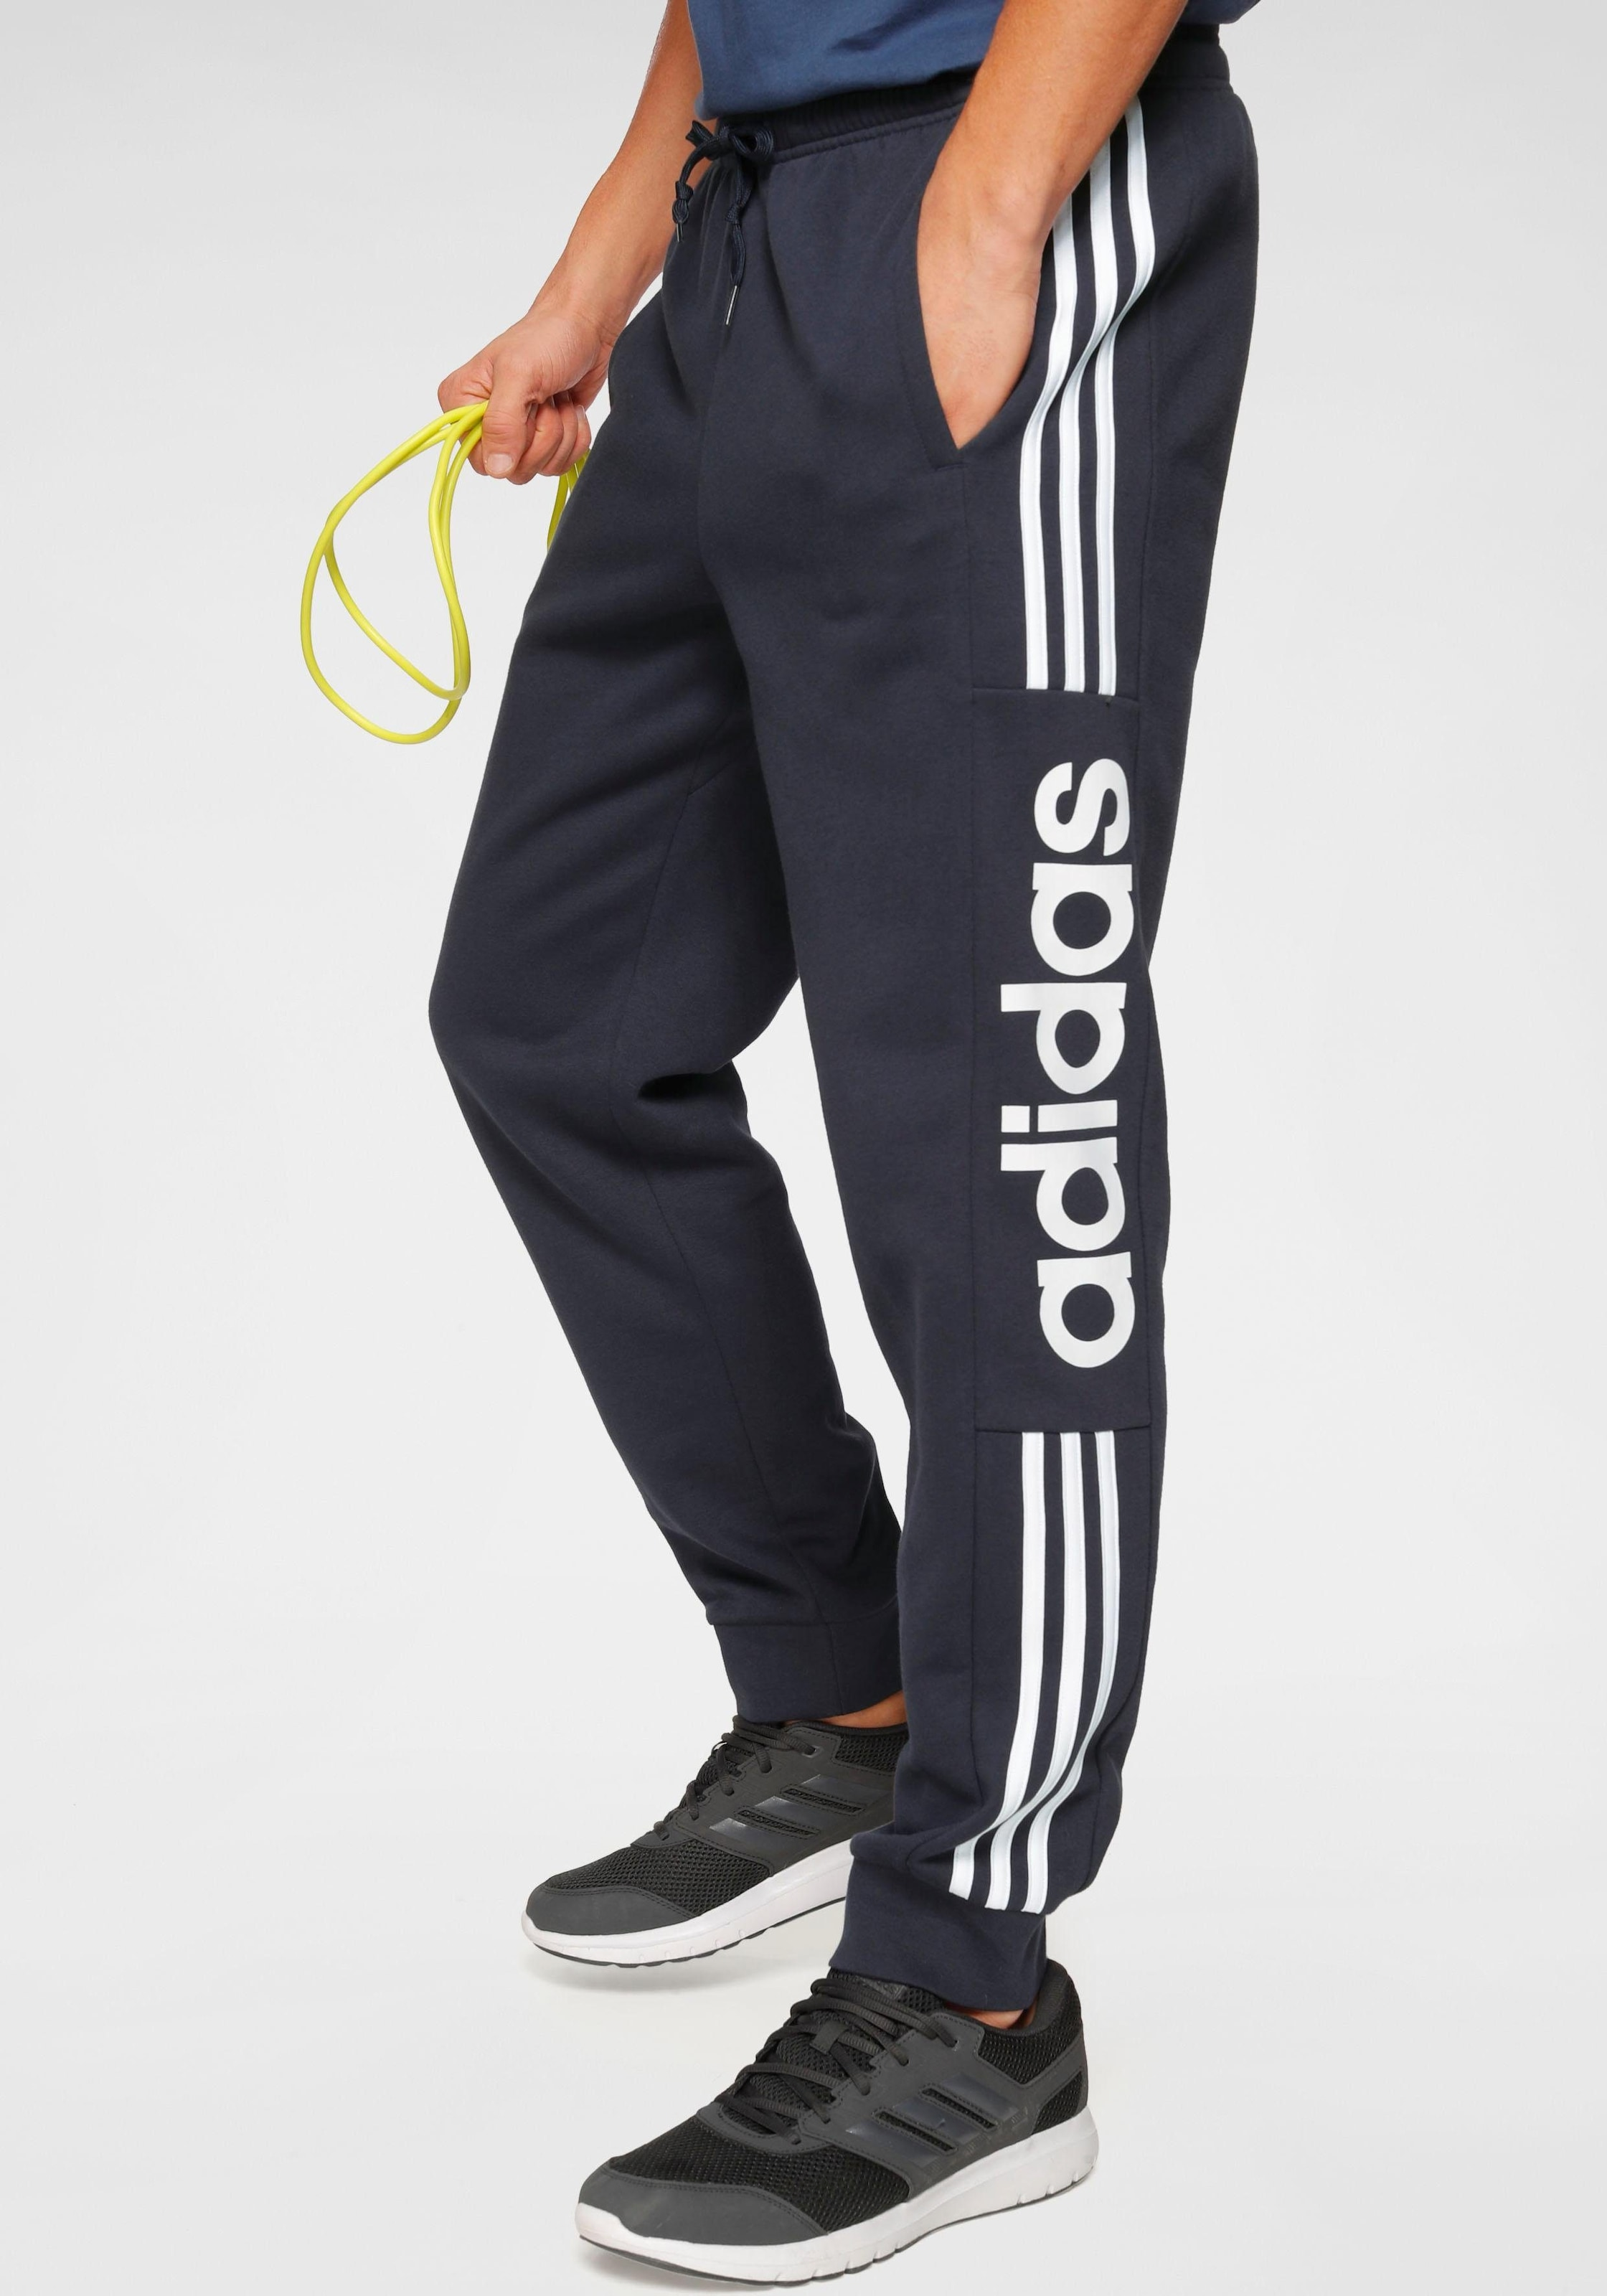 adidas performance jogginghose